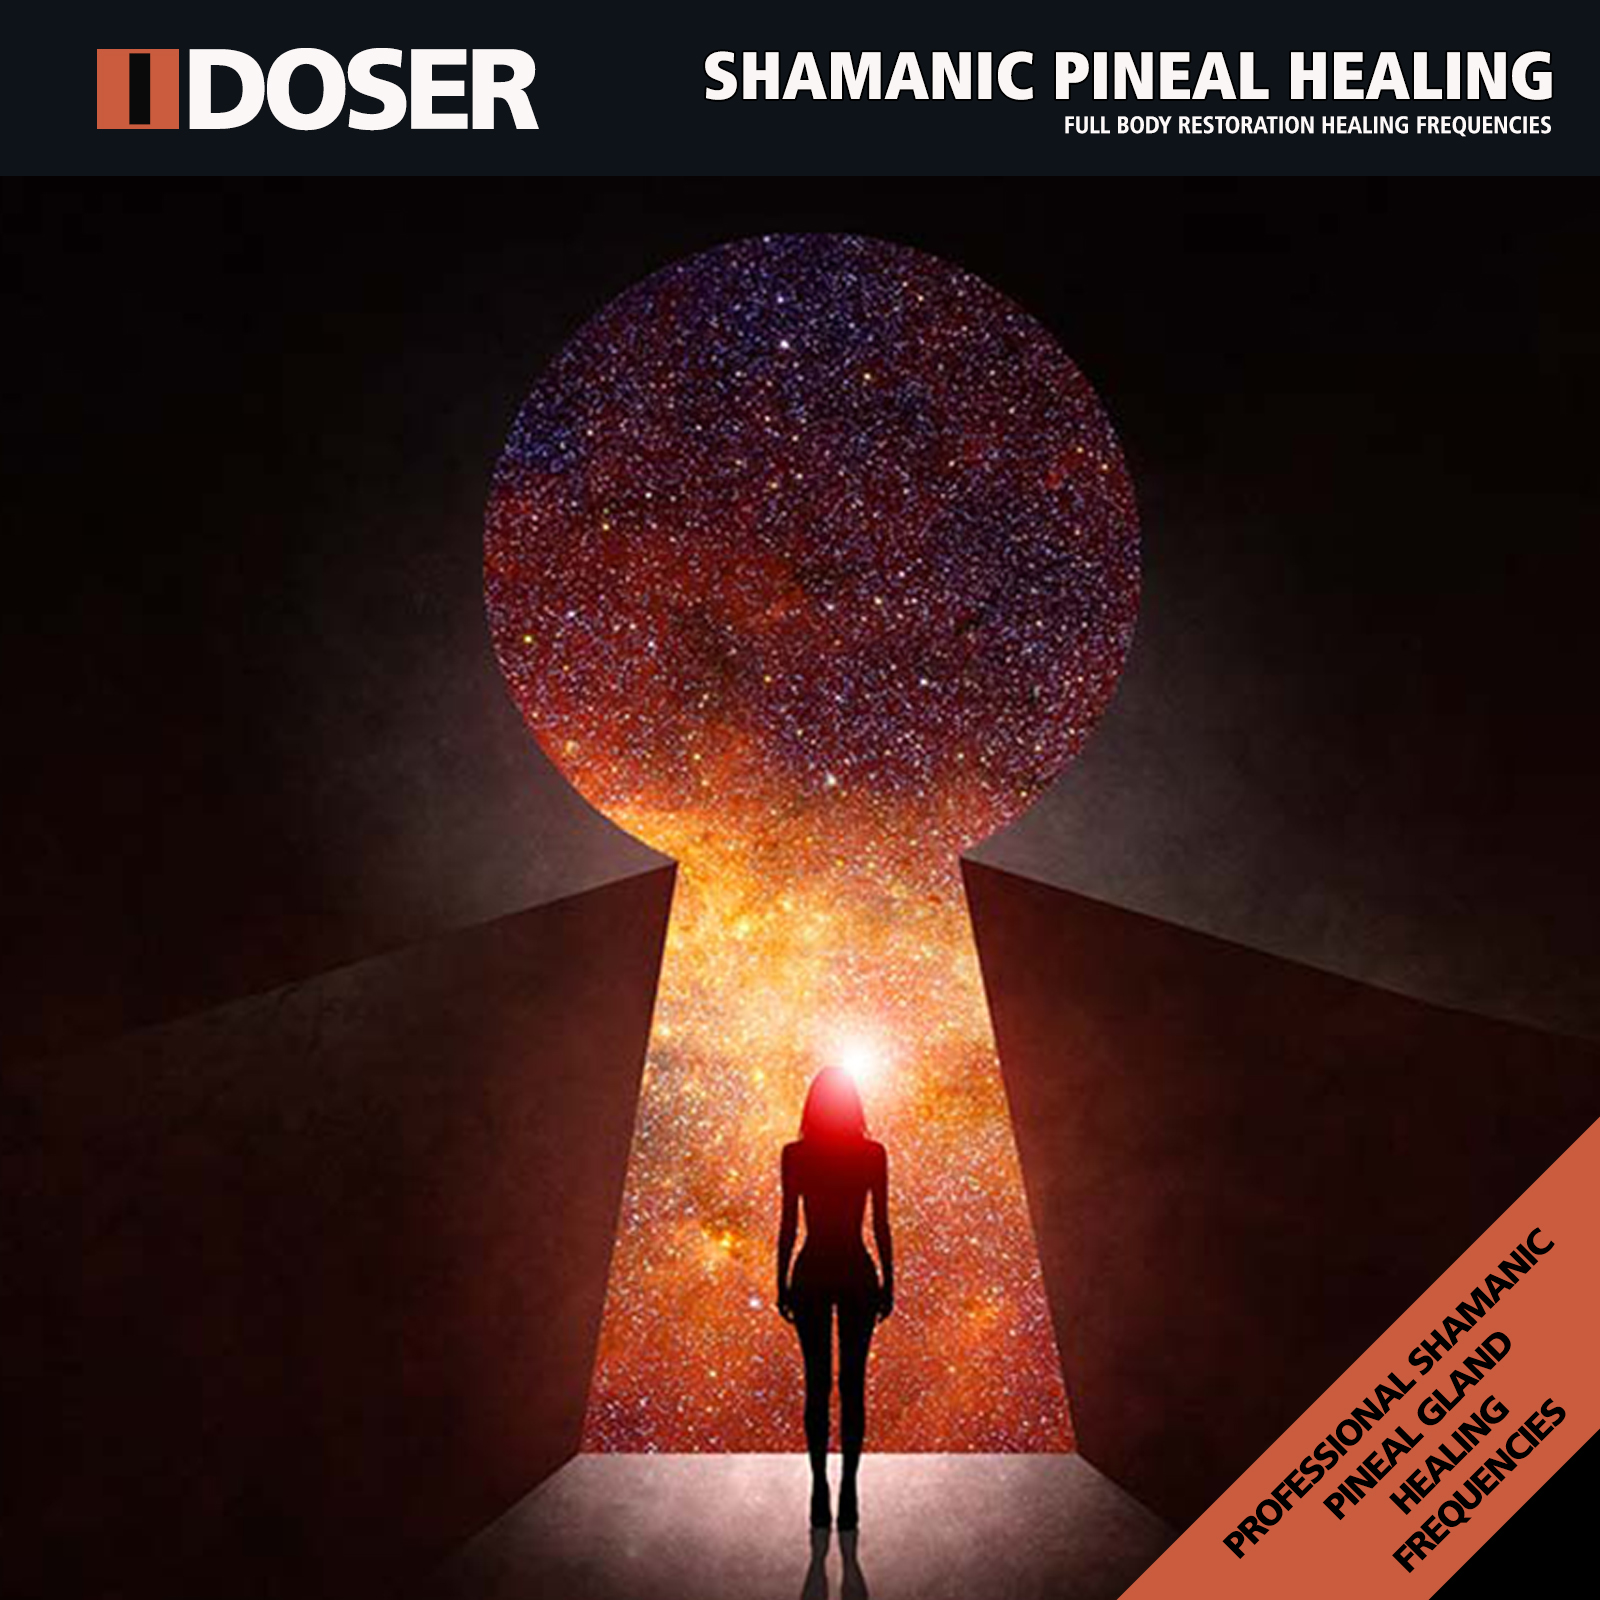 Instant Download MP3s : I-Doser Audio, Brainwave Doses